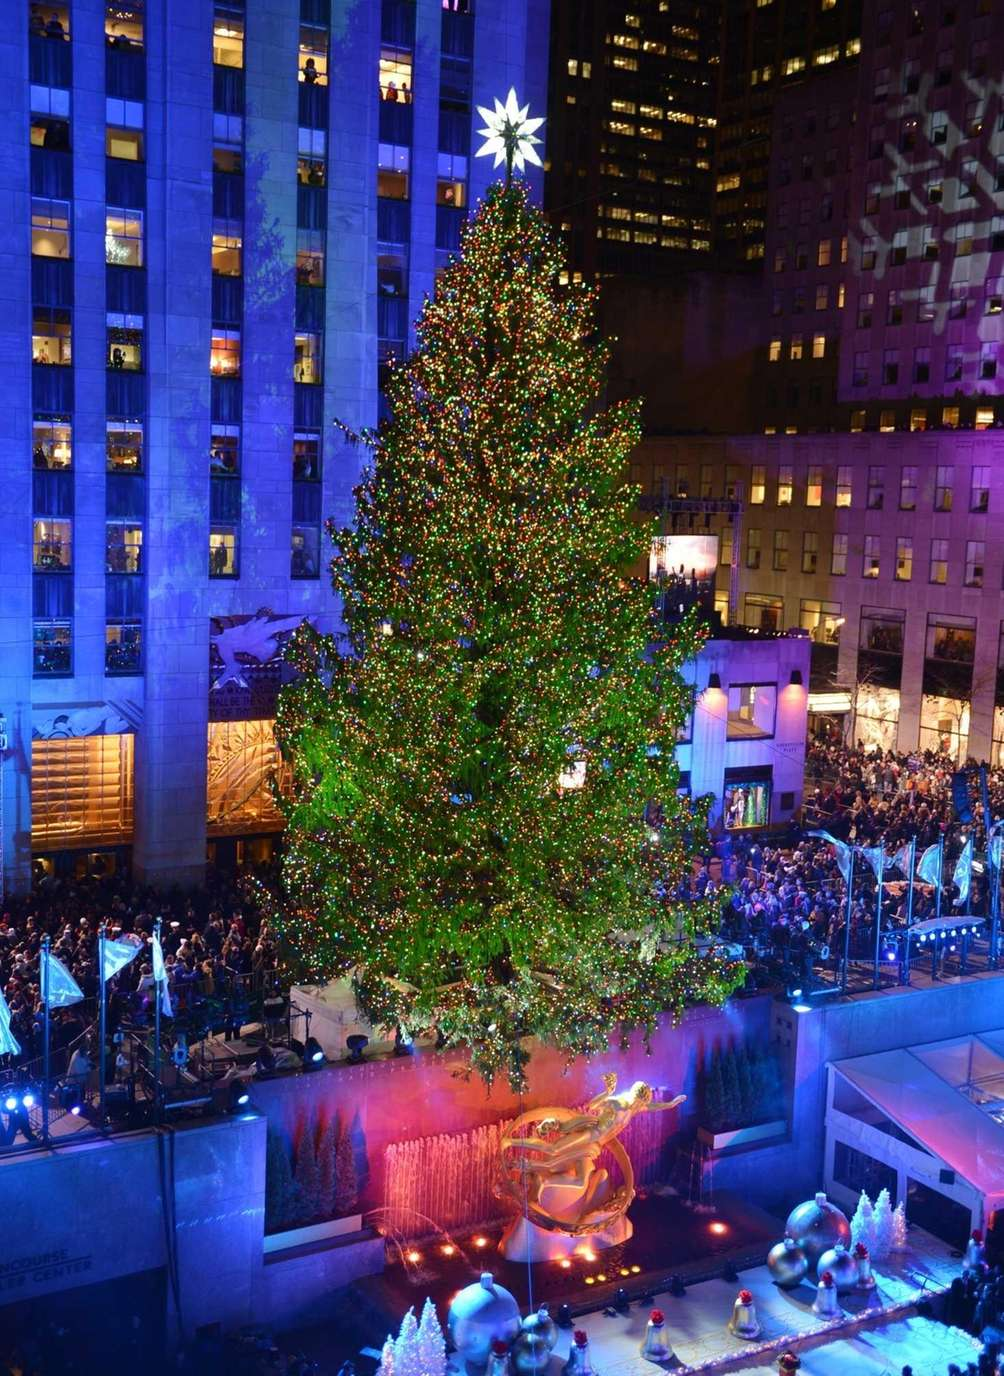 The Rockefeller Center Christmas tree after its annual